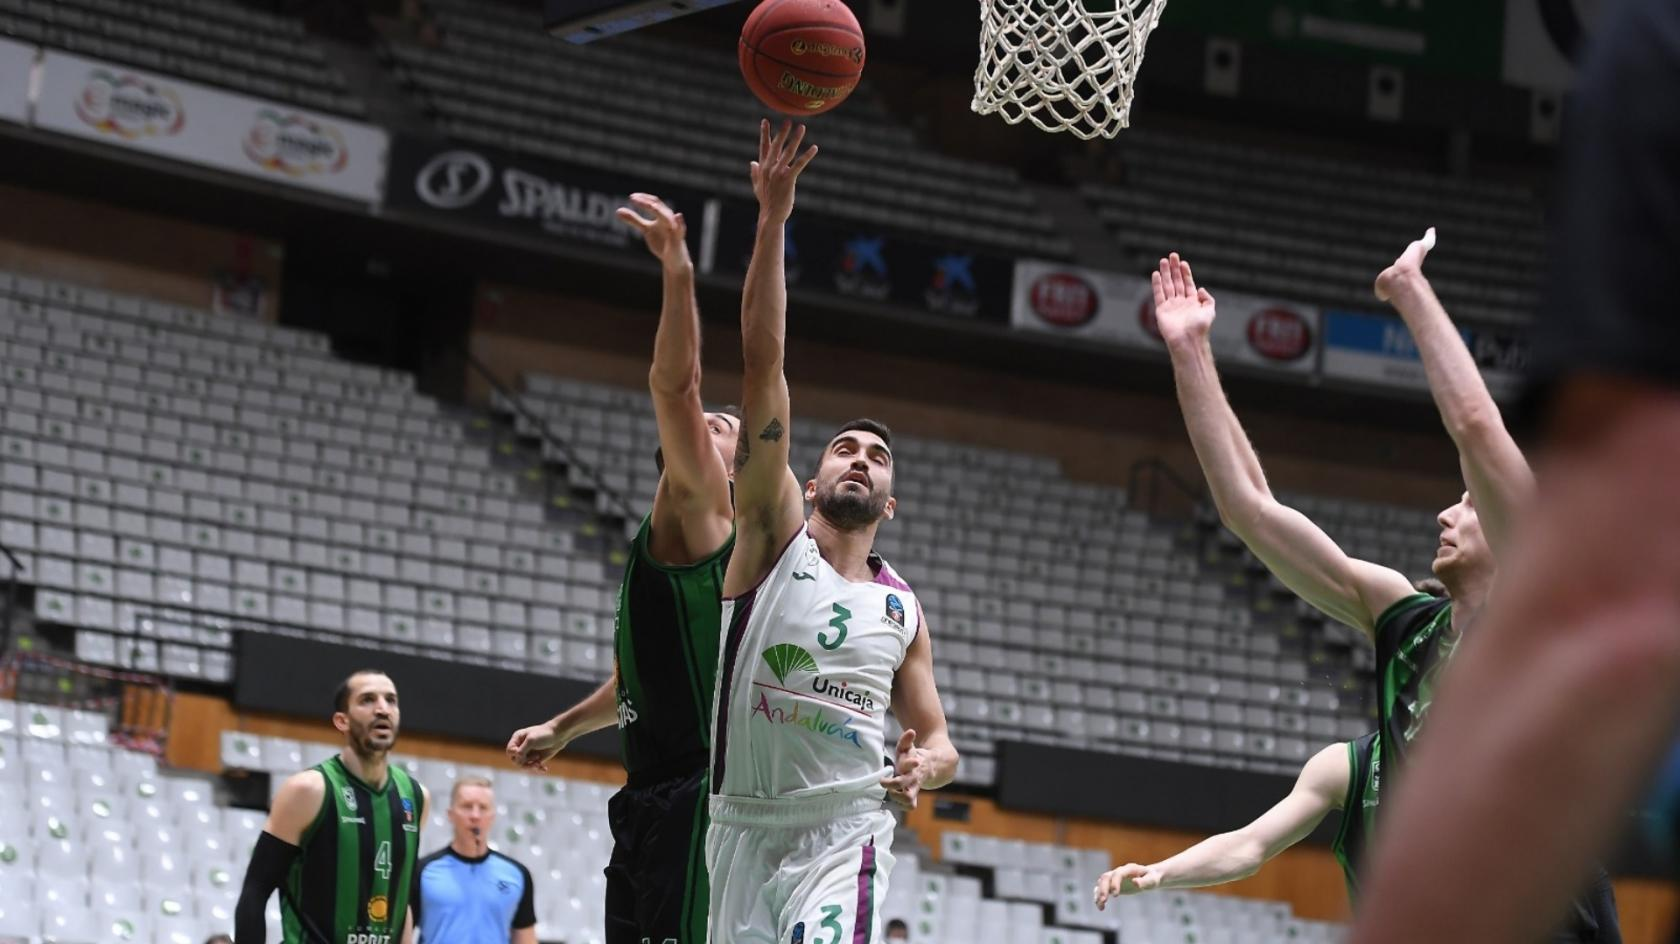 Jaime Fernández, MVP of Round 5 of the Top 16 of the 7DAYS Eurocup